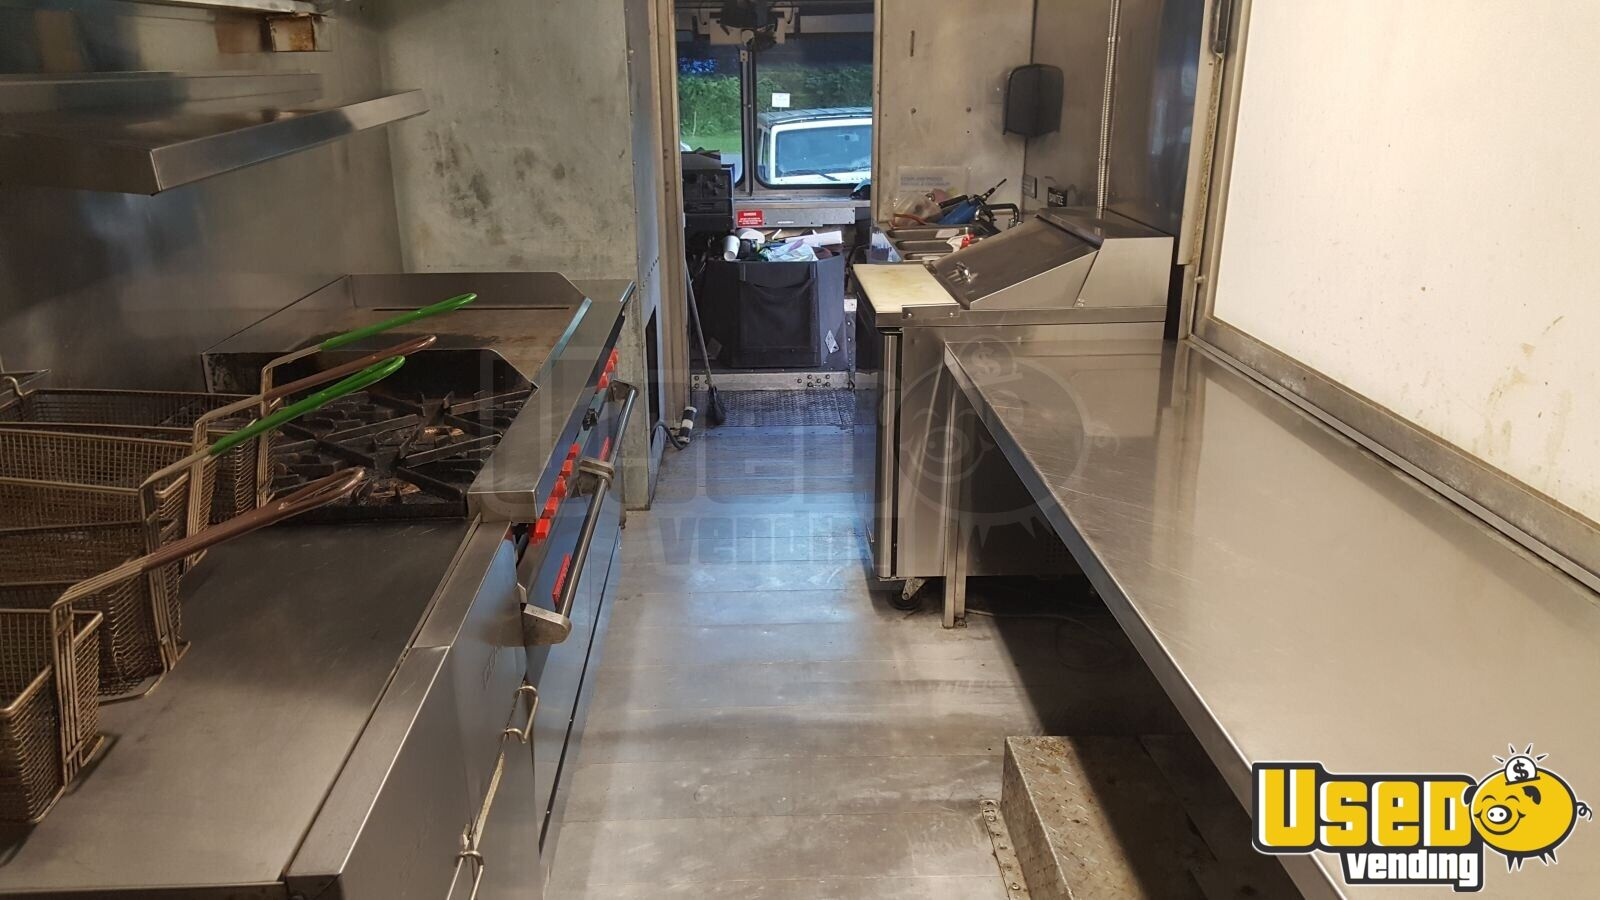 2005 Workhorse Custom Chassis Barbecue Food Truck Generator New York Diesel Engine for Sale - 9